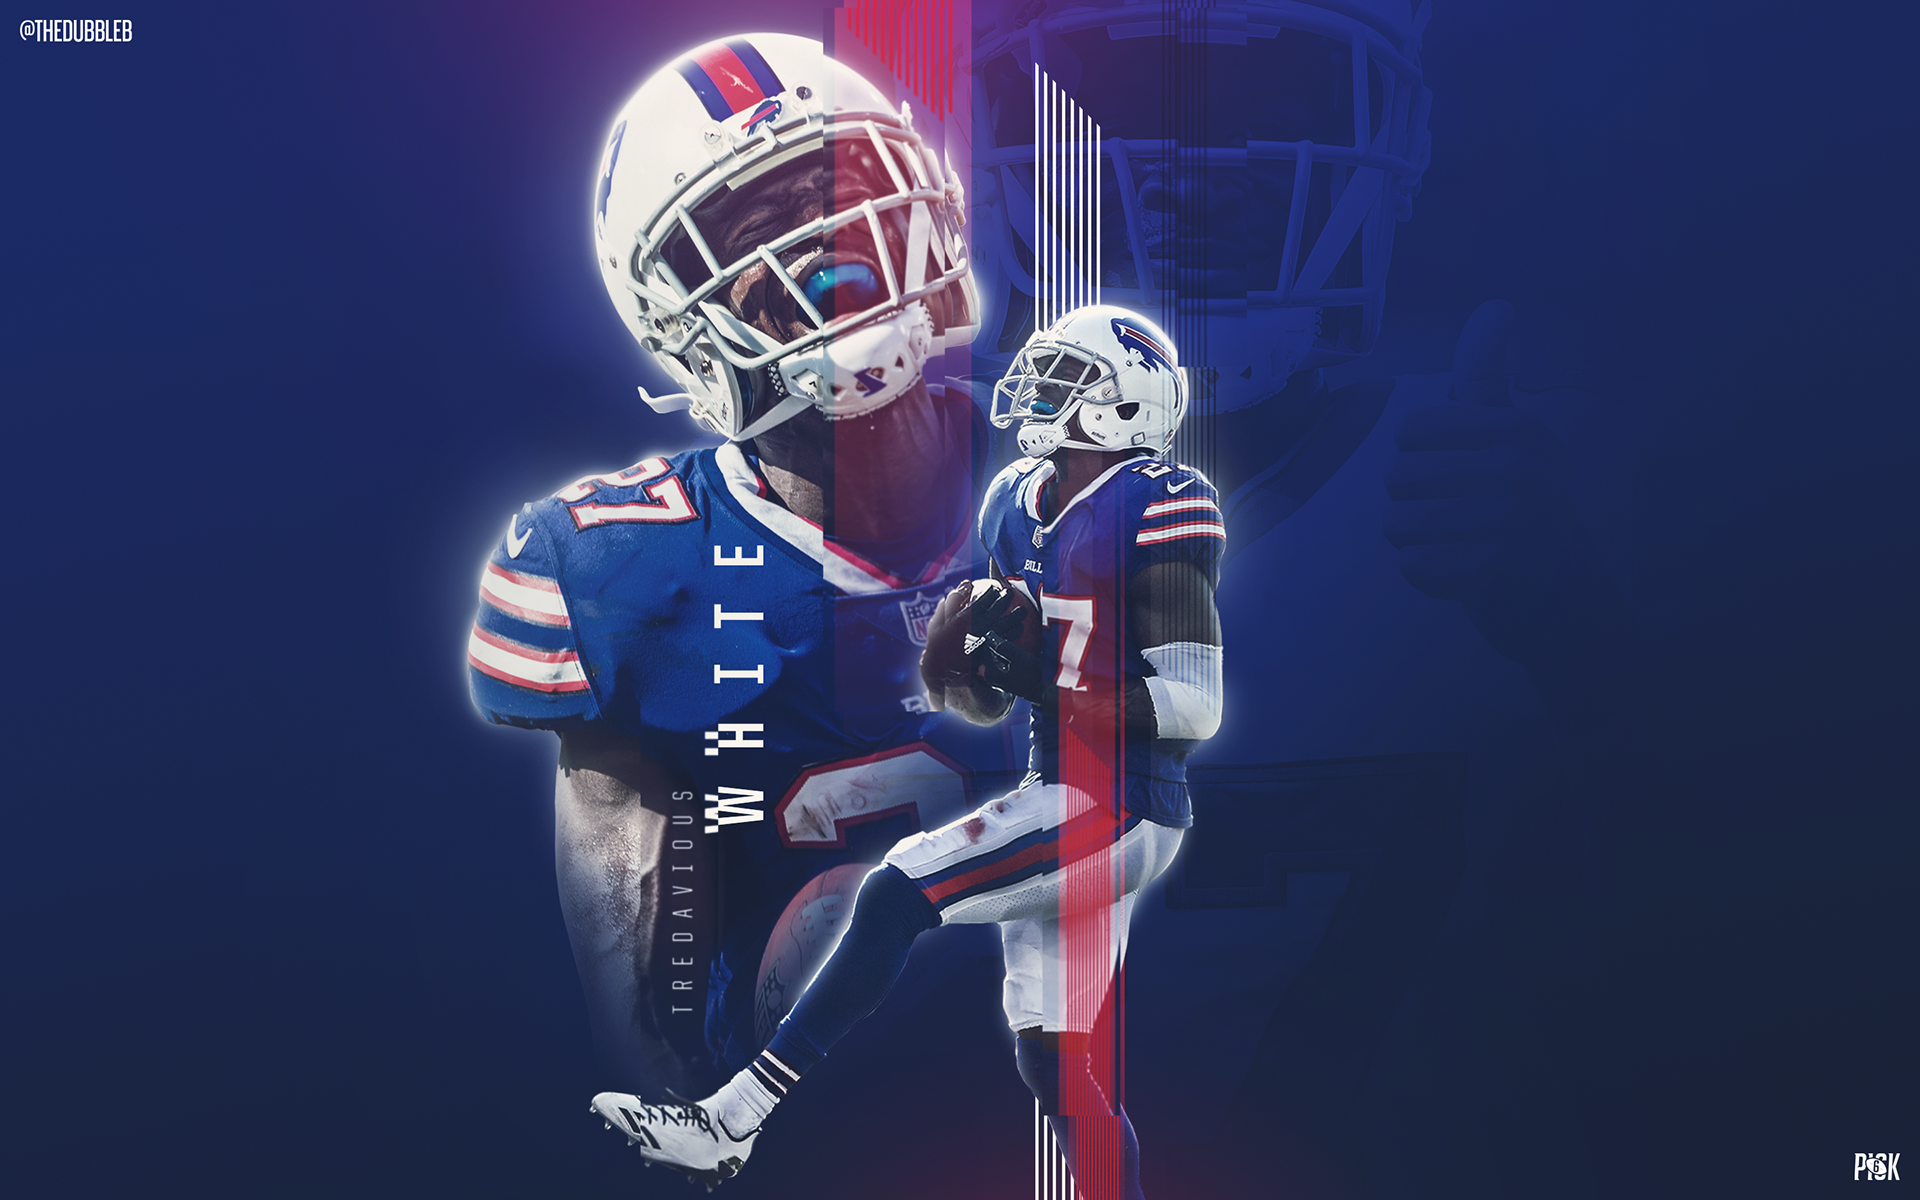 Nfl Wallpapers W Time Lapses On Behance Sports Design Inspiration Sports Design Nfl